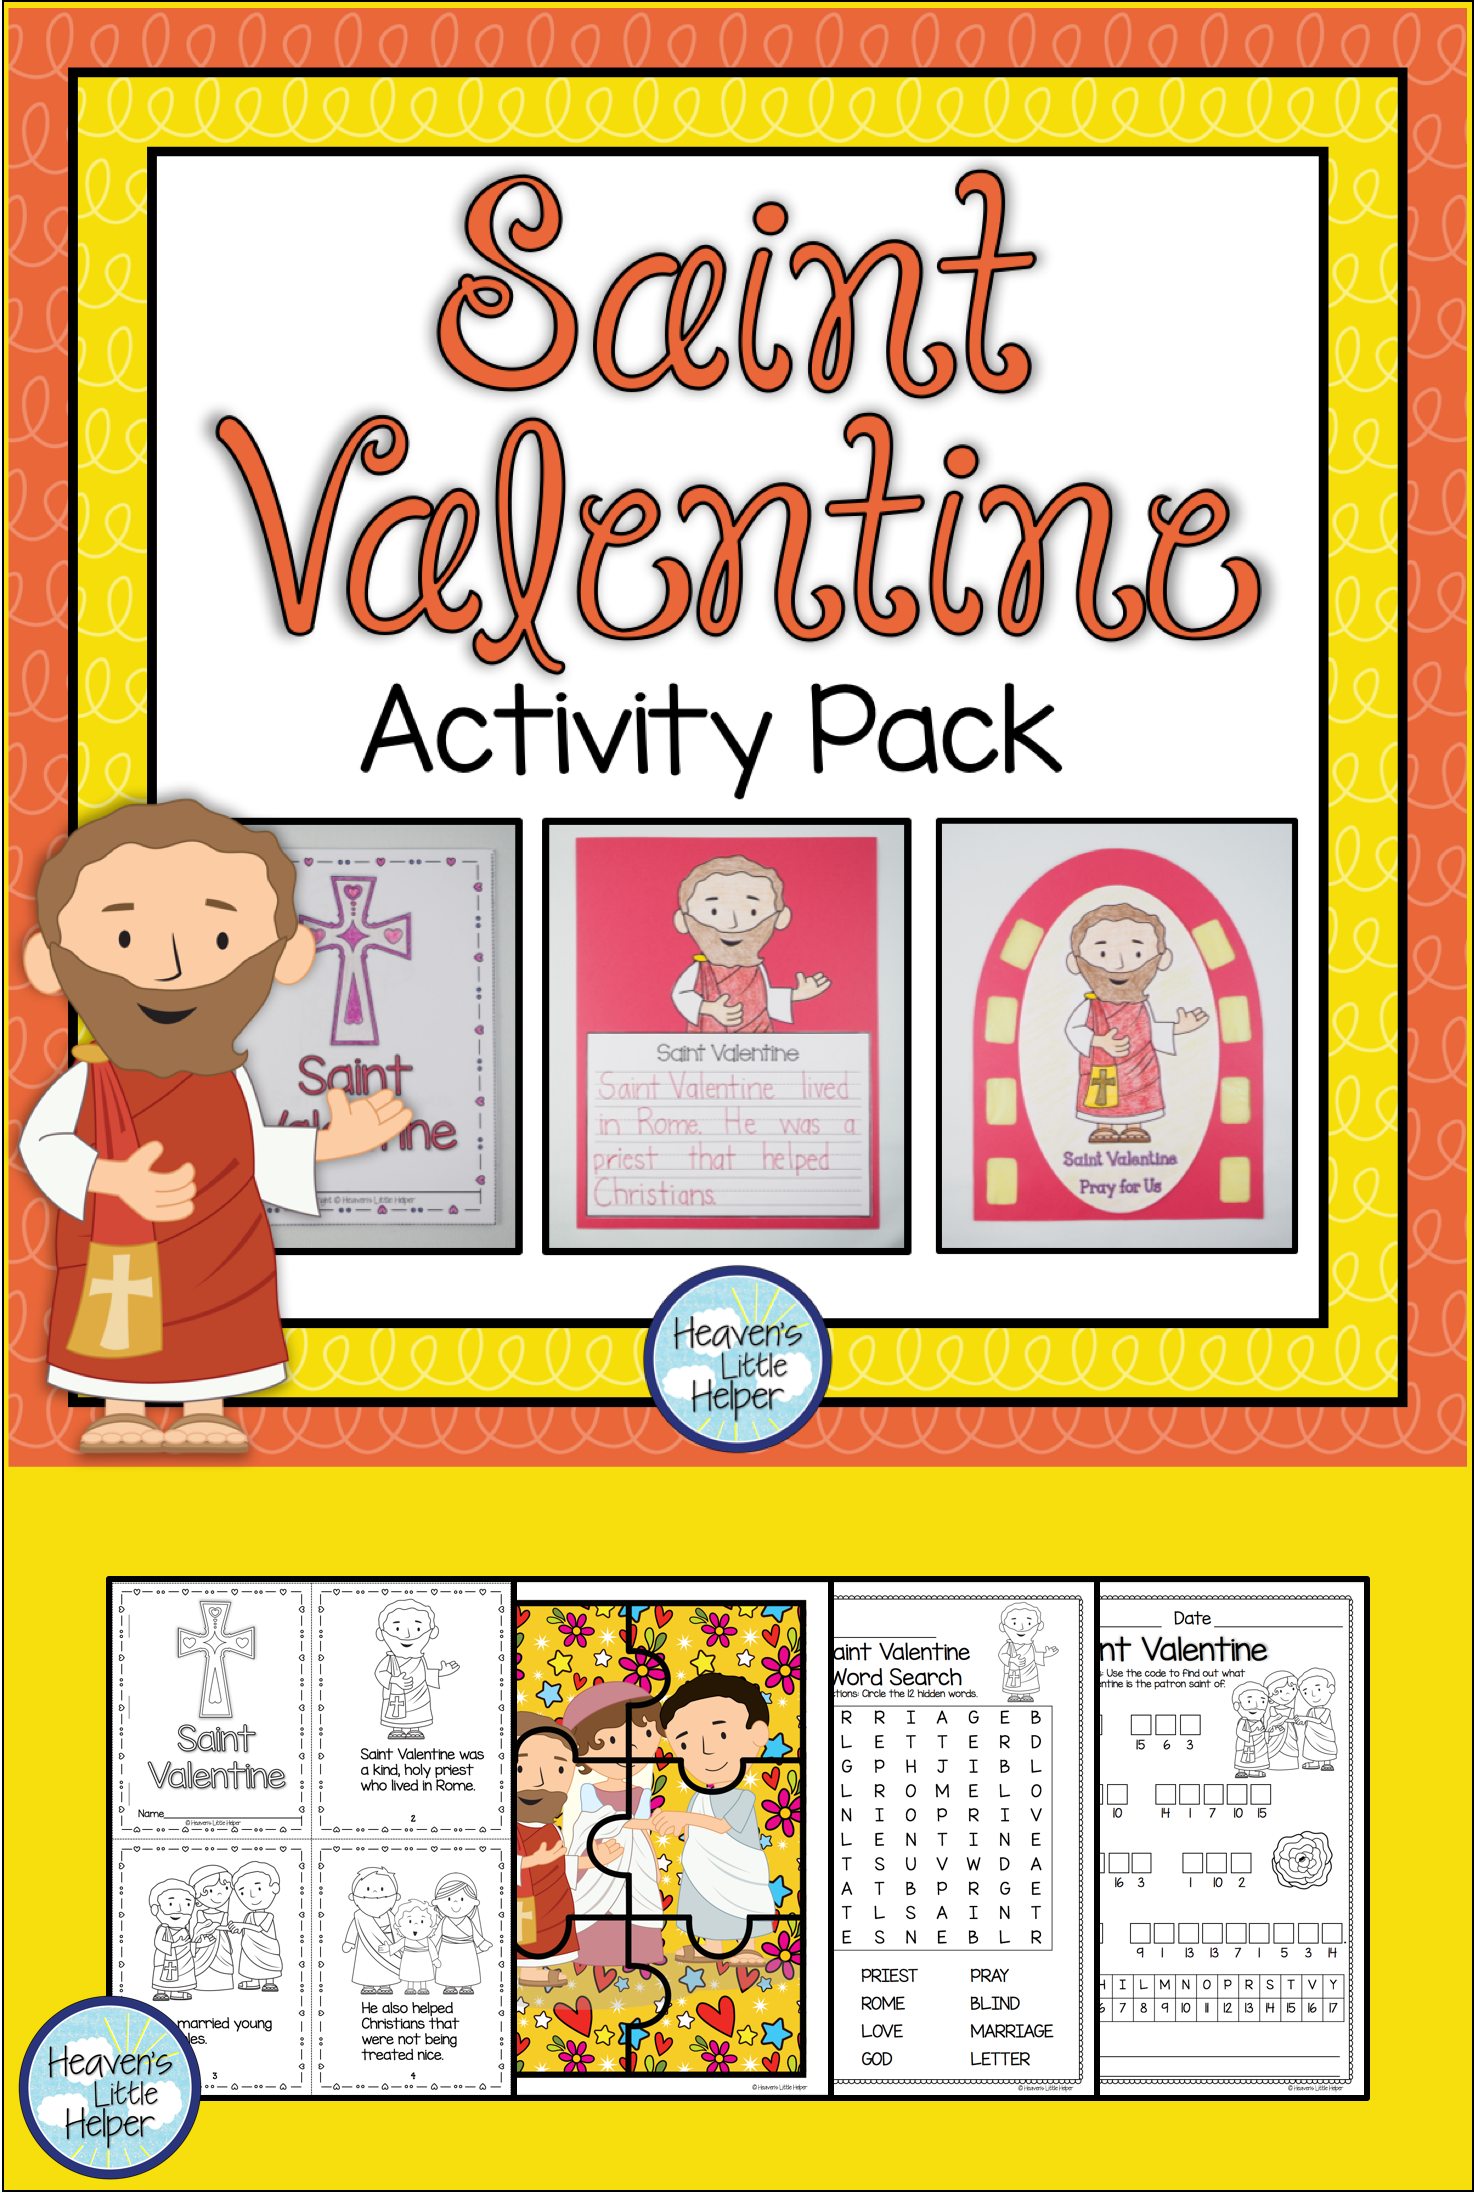 Printable Resource To Help Catholic Kids Learn About Saint